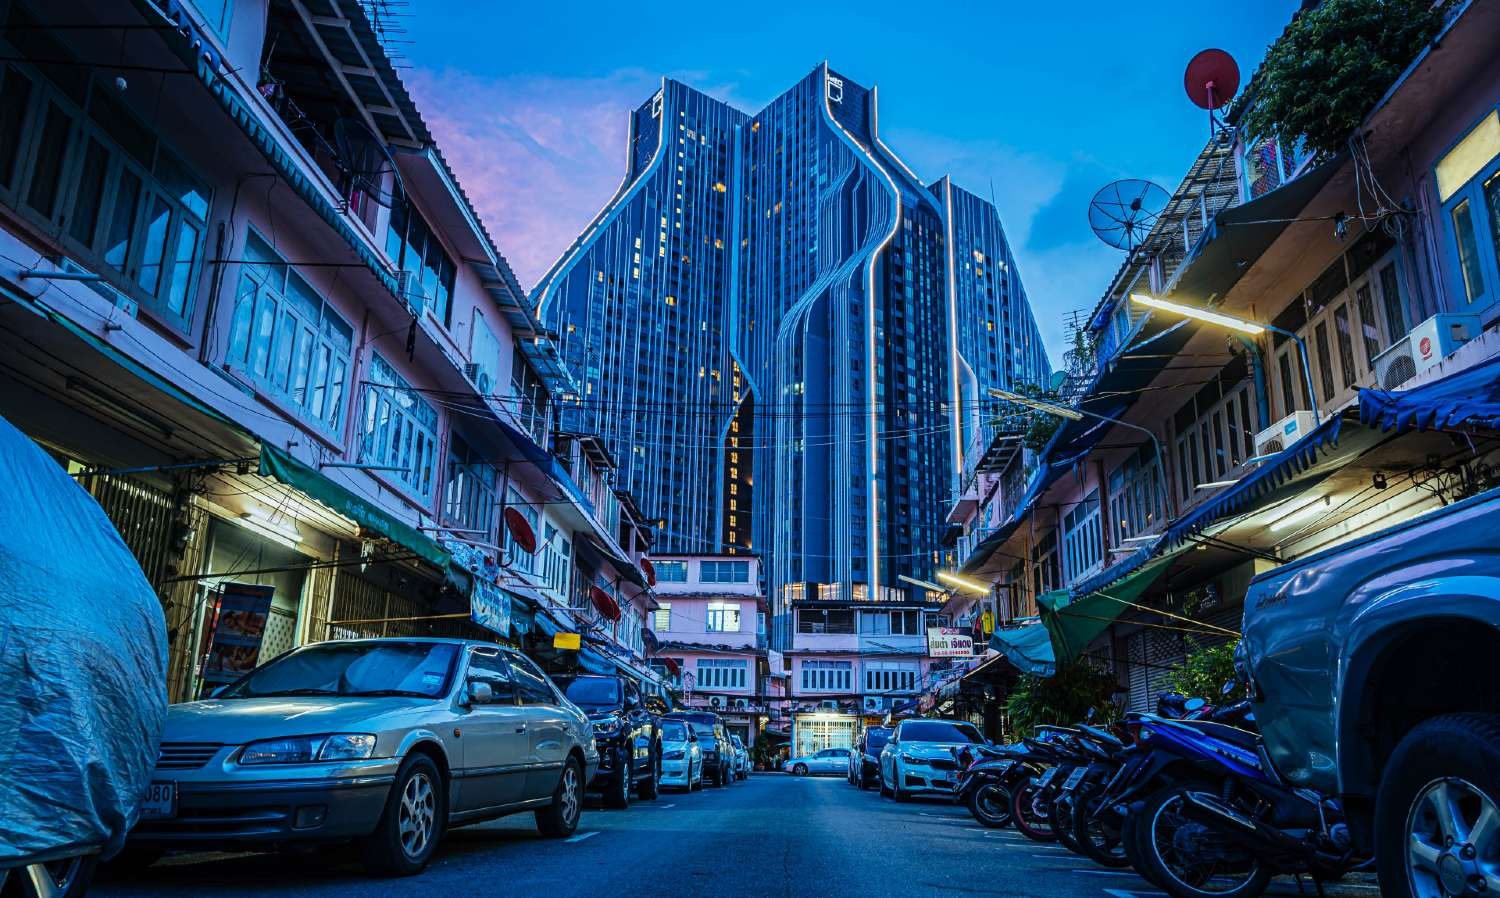 Old and modern buildings in the SamYan district of Bangkok